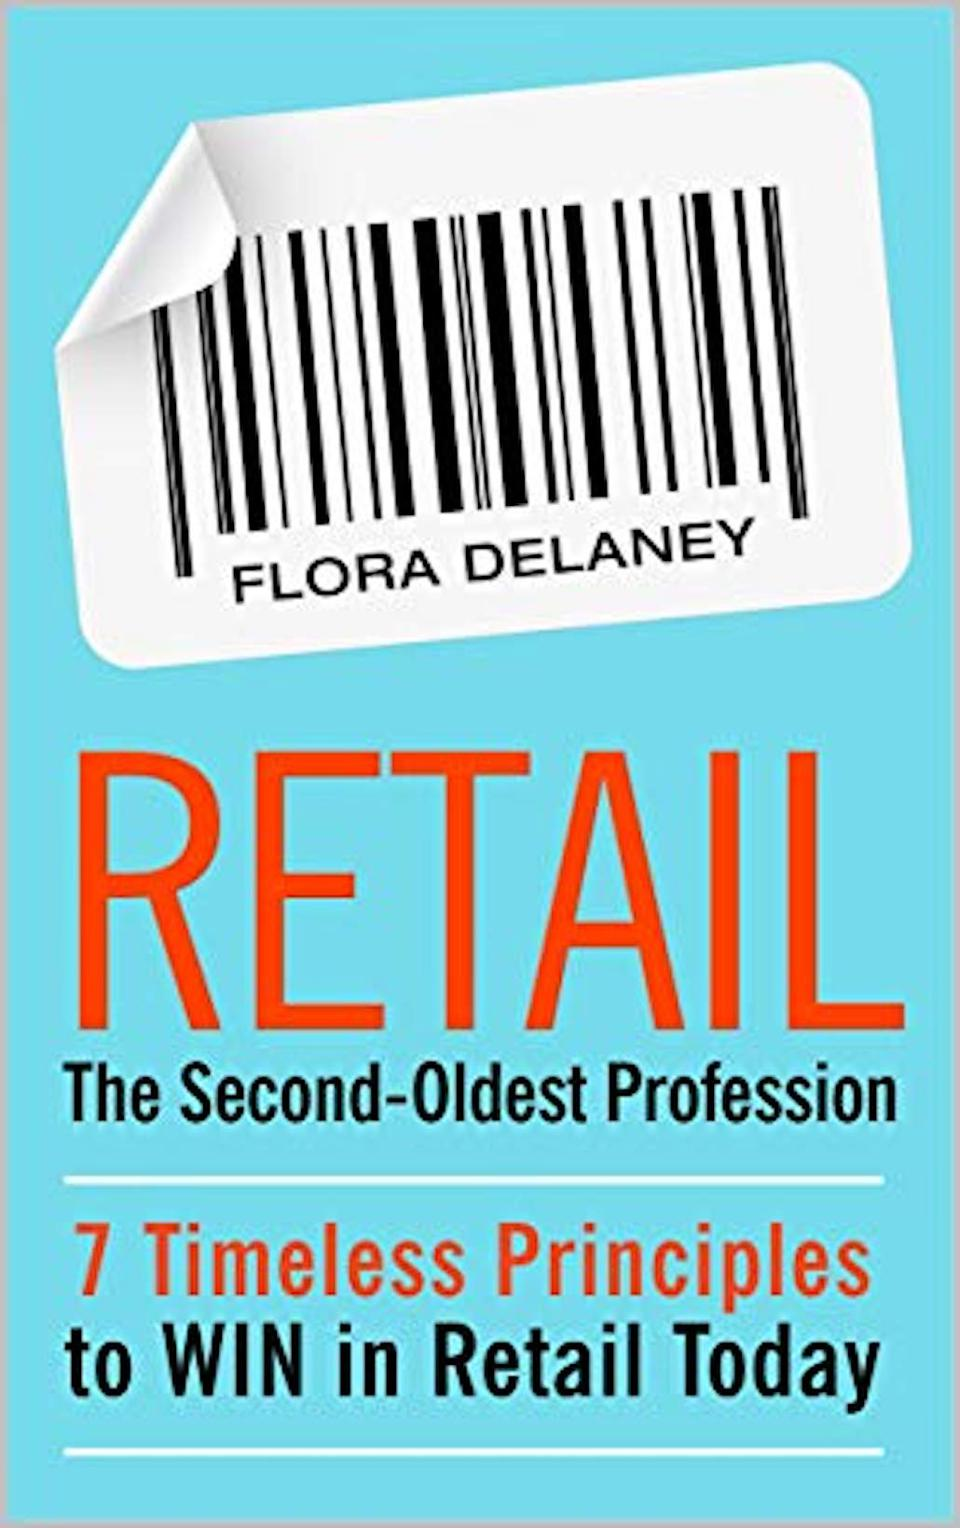 Retail—The Second-Oldest Profession: 7 Timeless Principles to Win in Retail Today by Flora Delaney